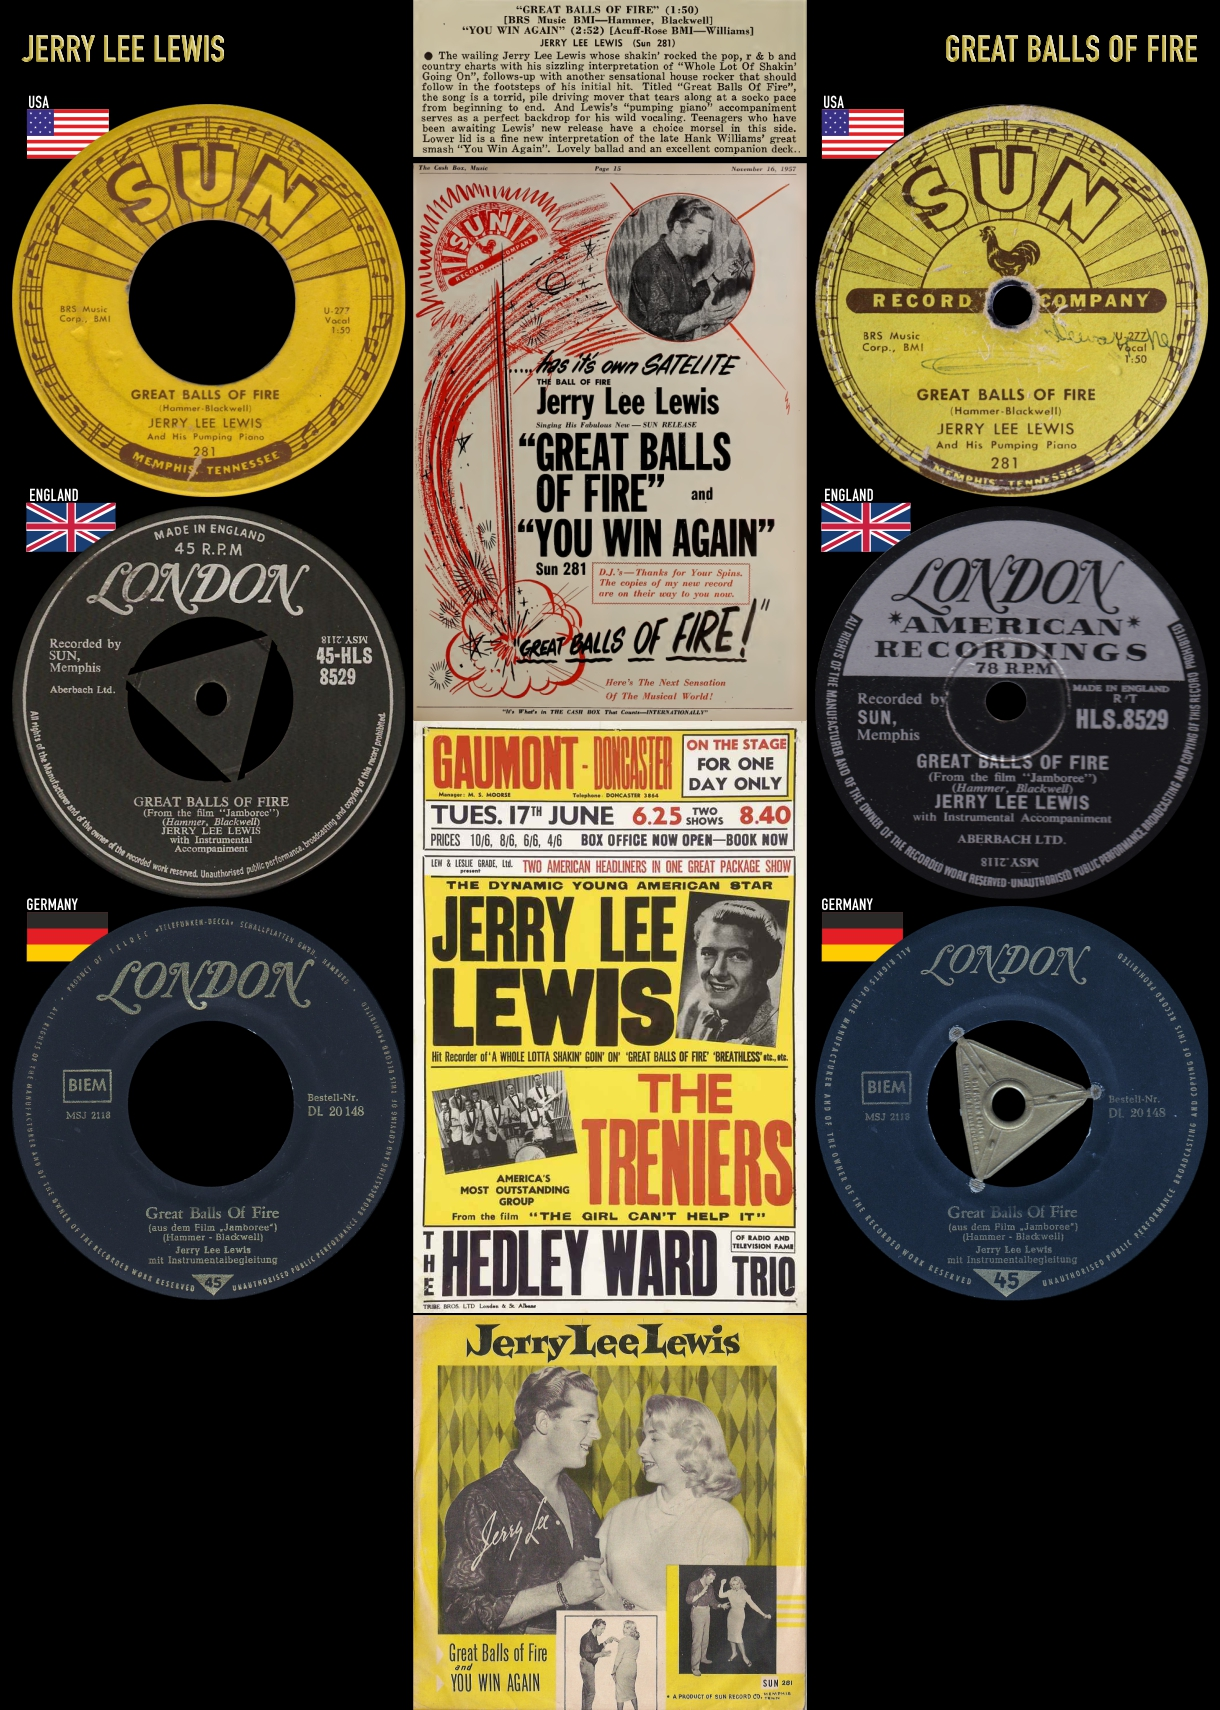 571123_Jerry Lee Lewis_Great Balls Of Fire